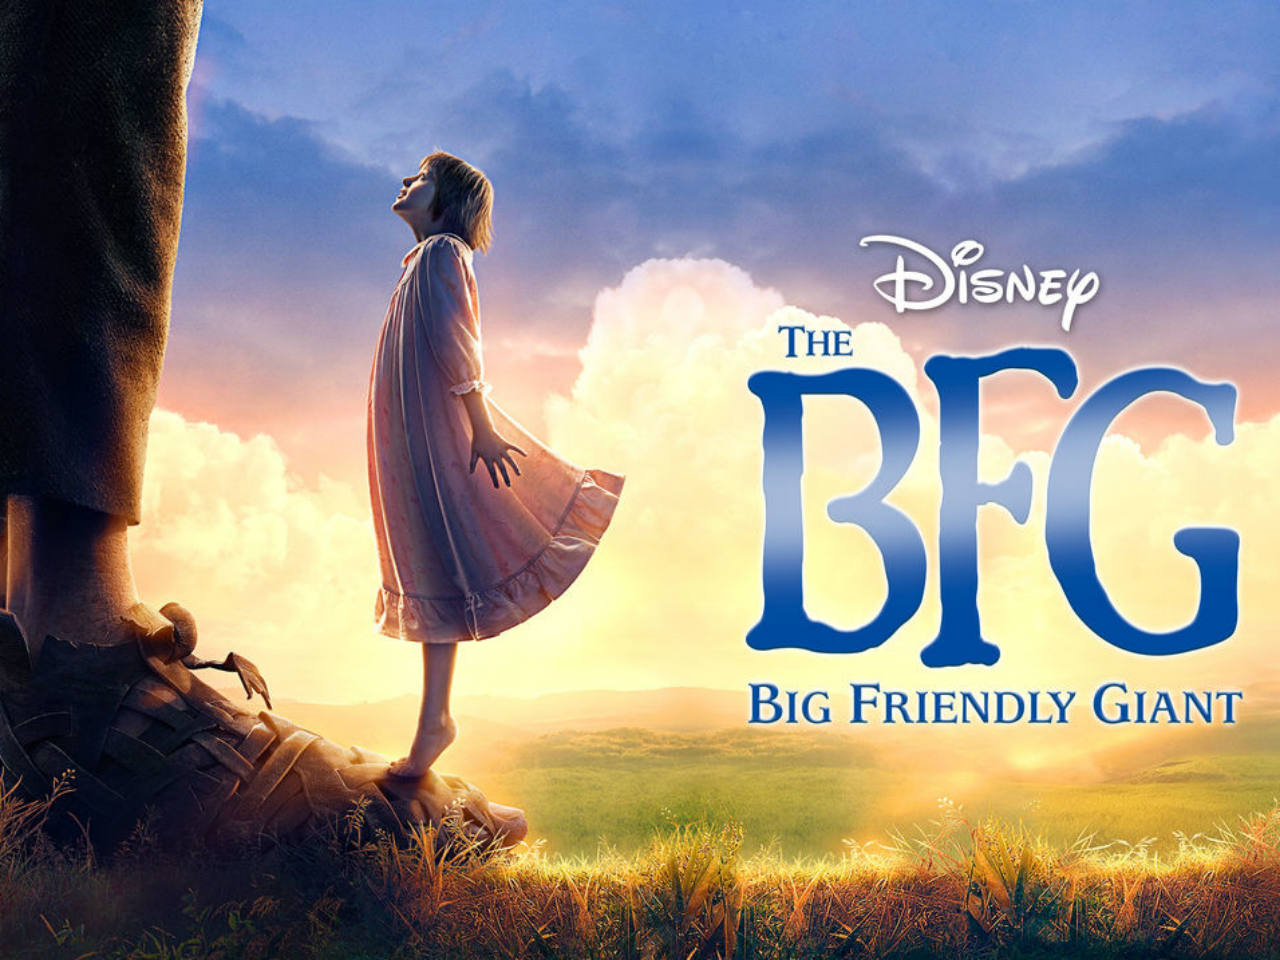 The movie poster for the kids' movie the BFG